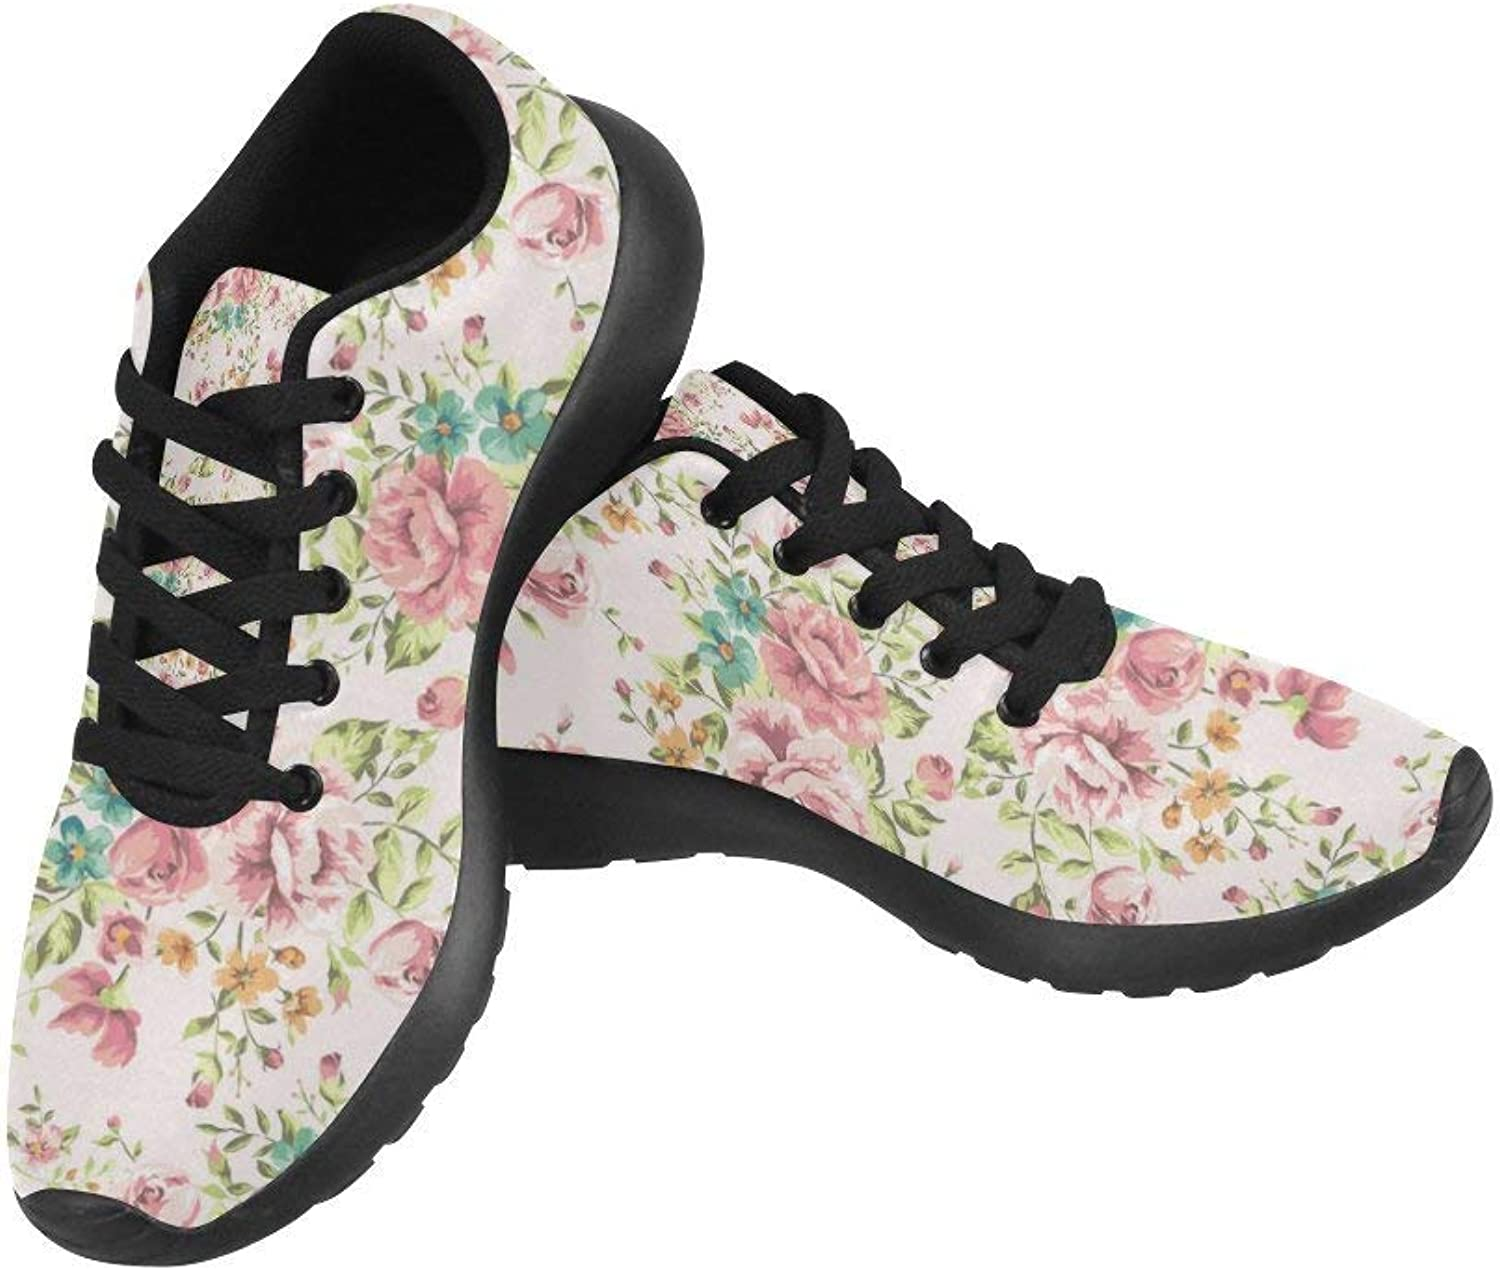 InterestPrint Classic Vintage Flower Pattern Print on Women's Running shoes Casual Lightweight Athletic Sneakers US Size 6-15